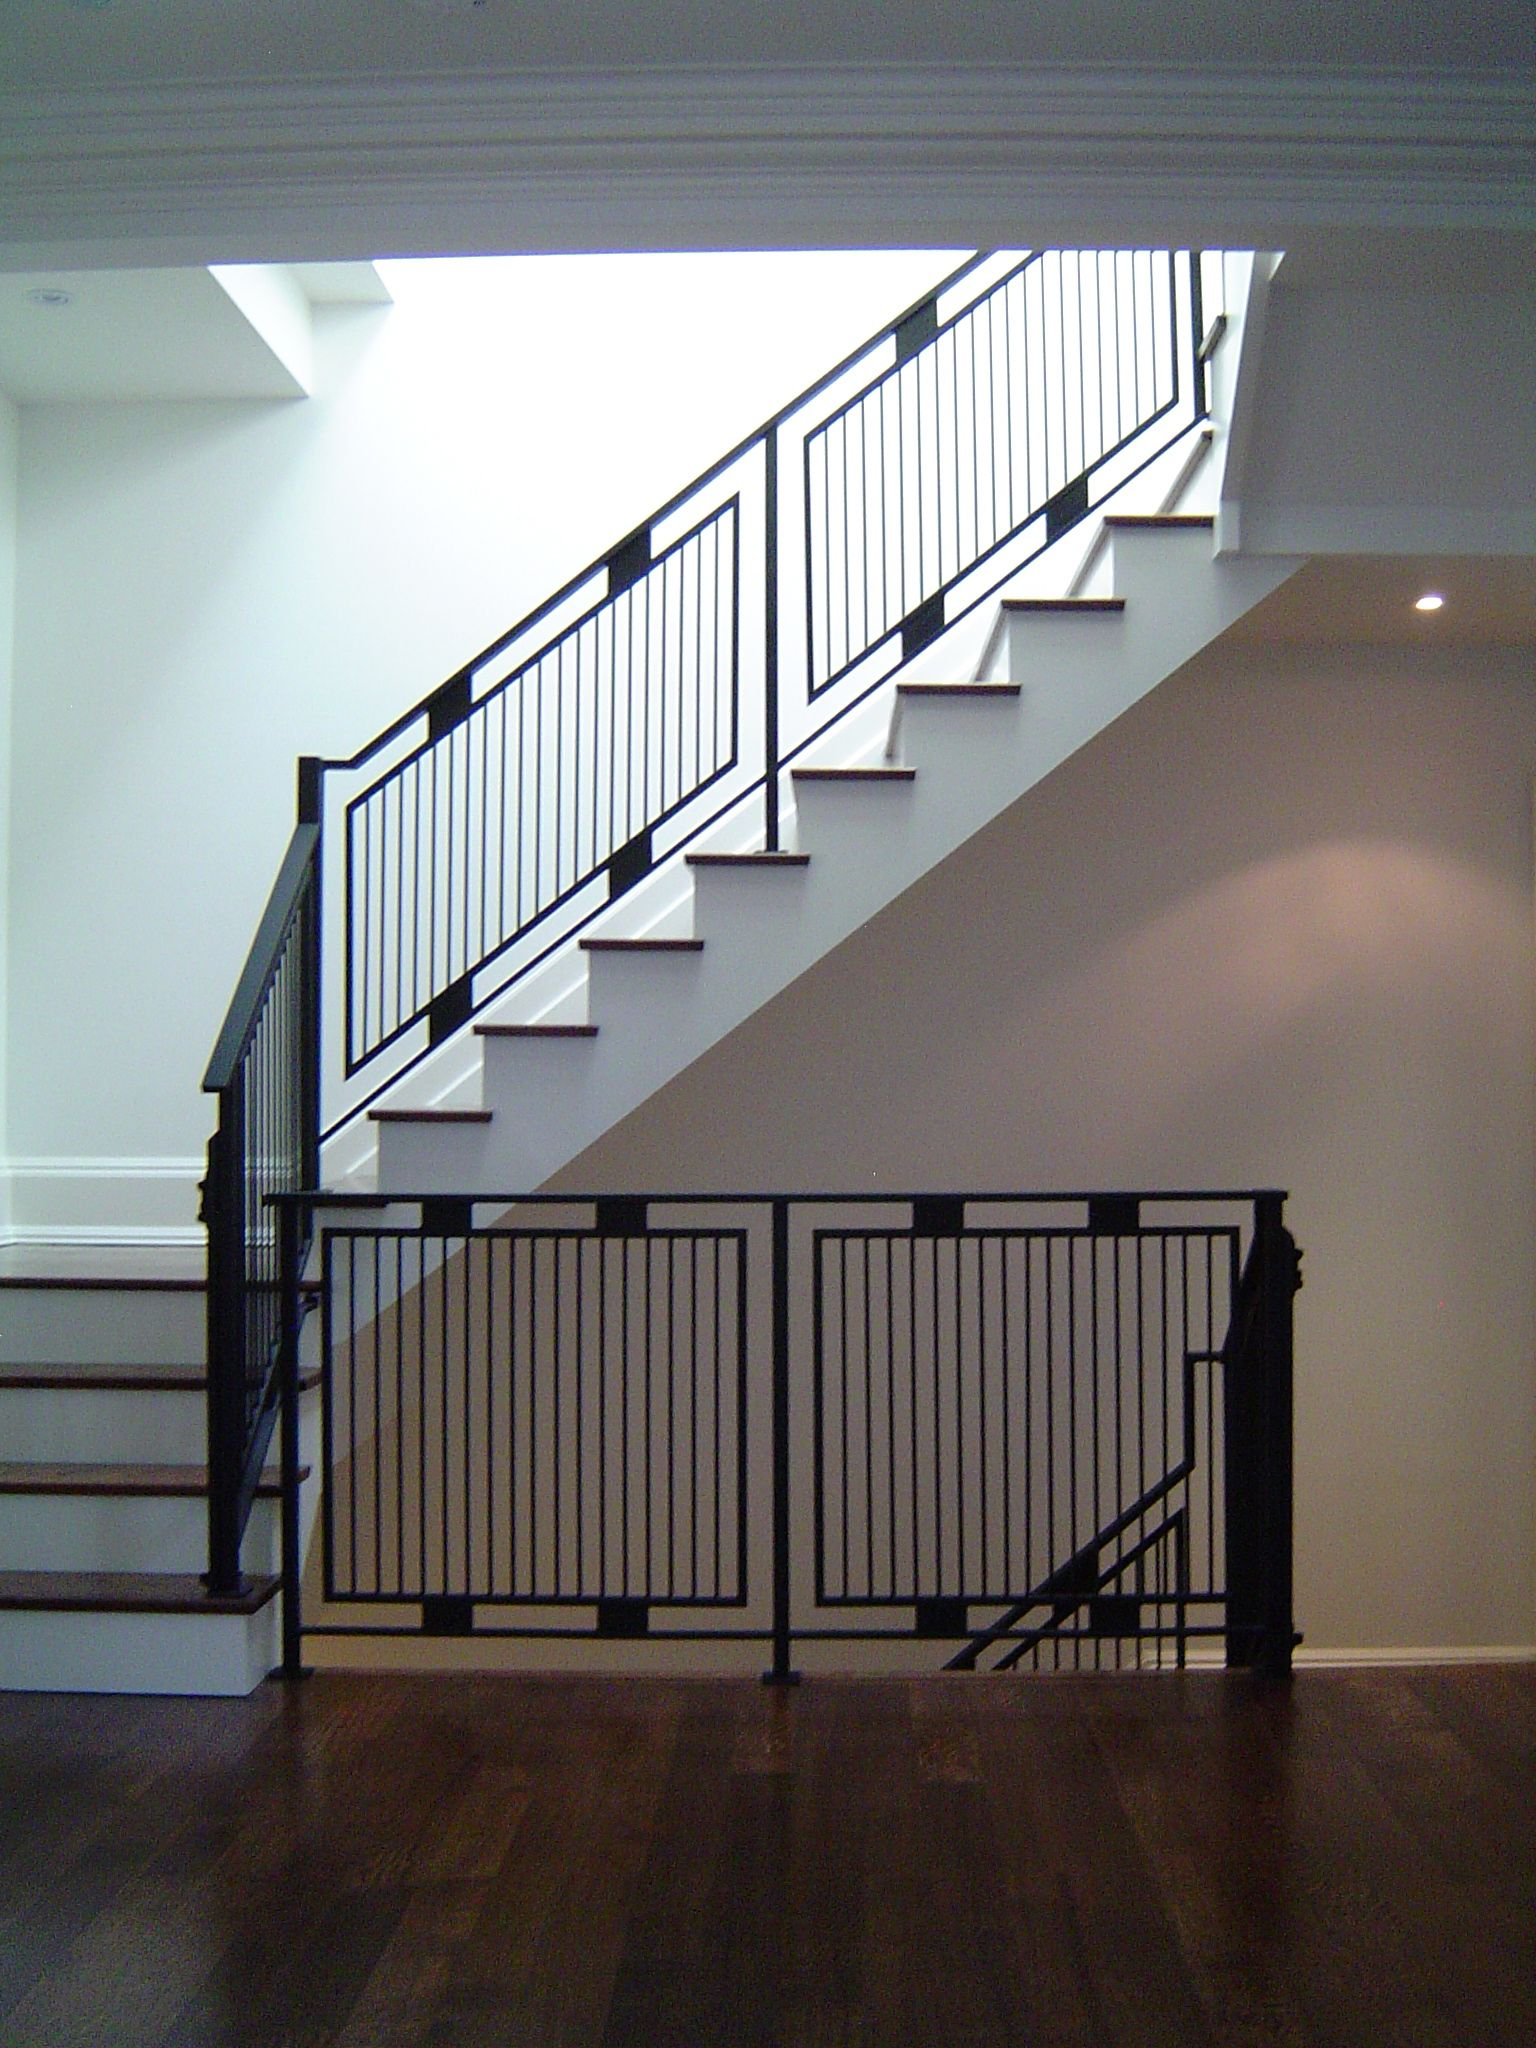 Light Weight Steel Tube Railings From The Basement To The Second Floor Www Thesteelworks Ca Railing Design Balcony Railing Design Stair Railing Design